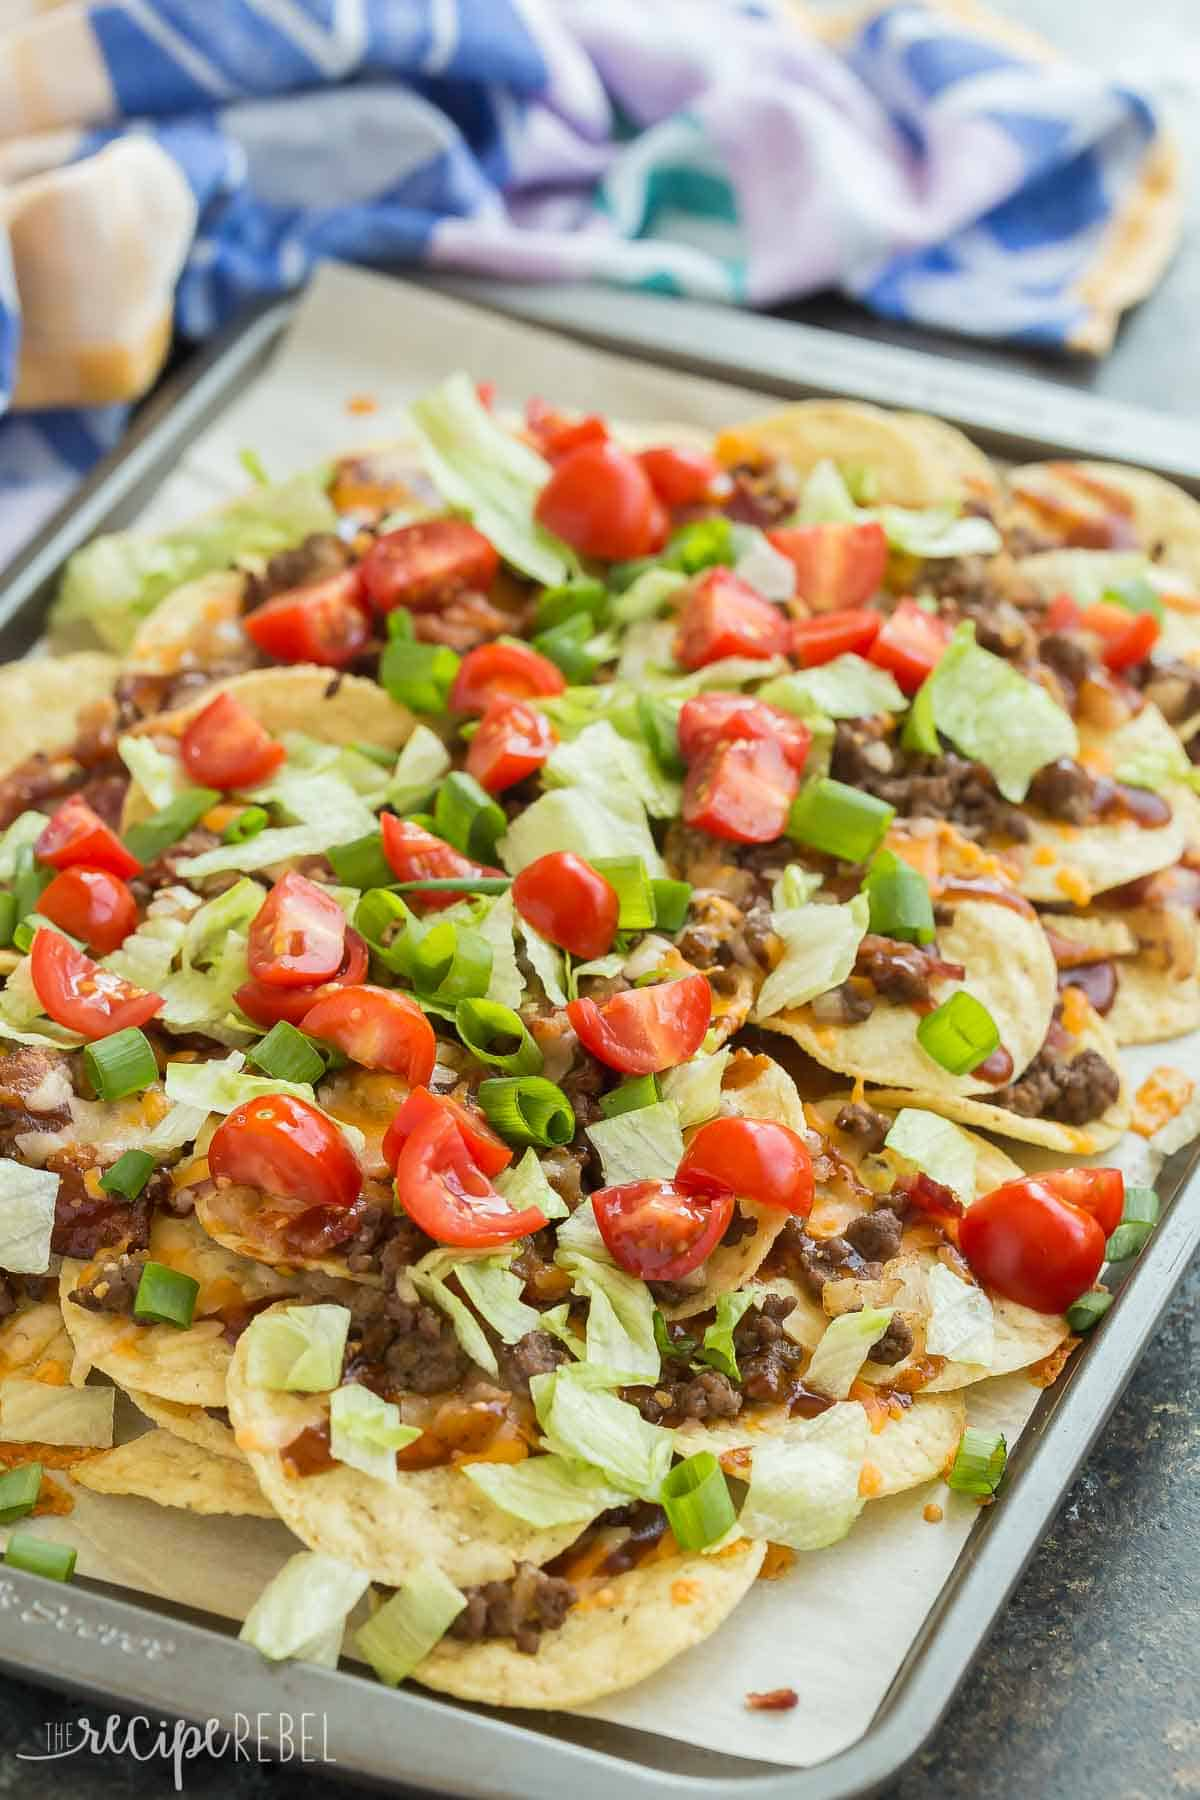 BBQ Bacon Cheeseburger Nachos are the best BBQ nachos you've ever had! Barbecue sauce, ground beef, bacon, cheddar cheese, green onions and all the burger toppings you want. Perfect for movie night or game day! Includes step by step RECIPE VIDEO. #nachos #appetizer #groundbeef #beef #recipe #recipes